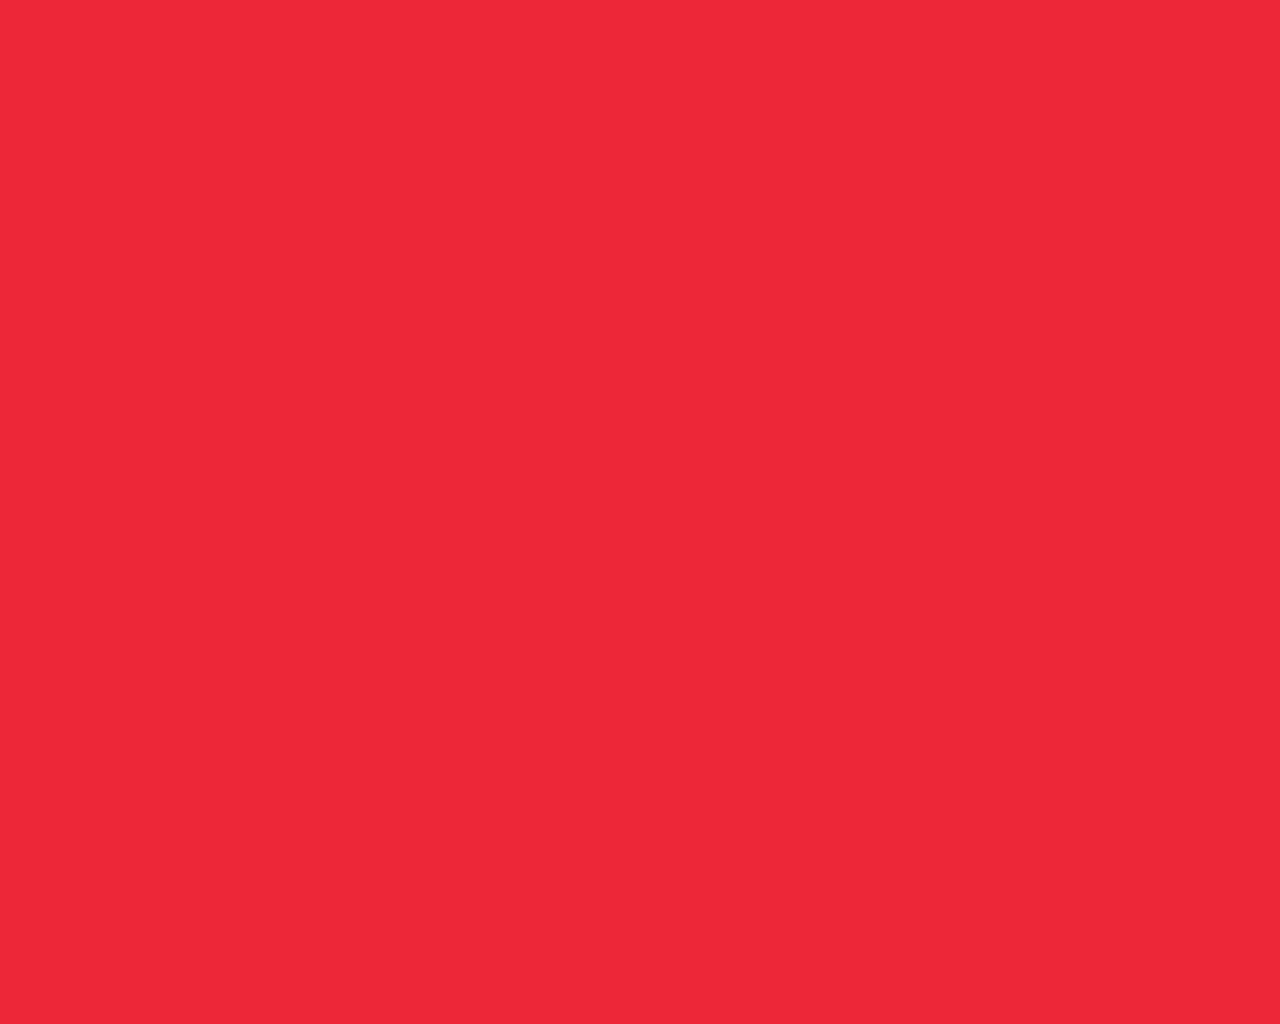 1280x1024 Imperial Red Solid Color Background